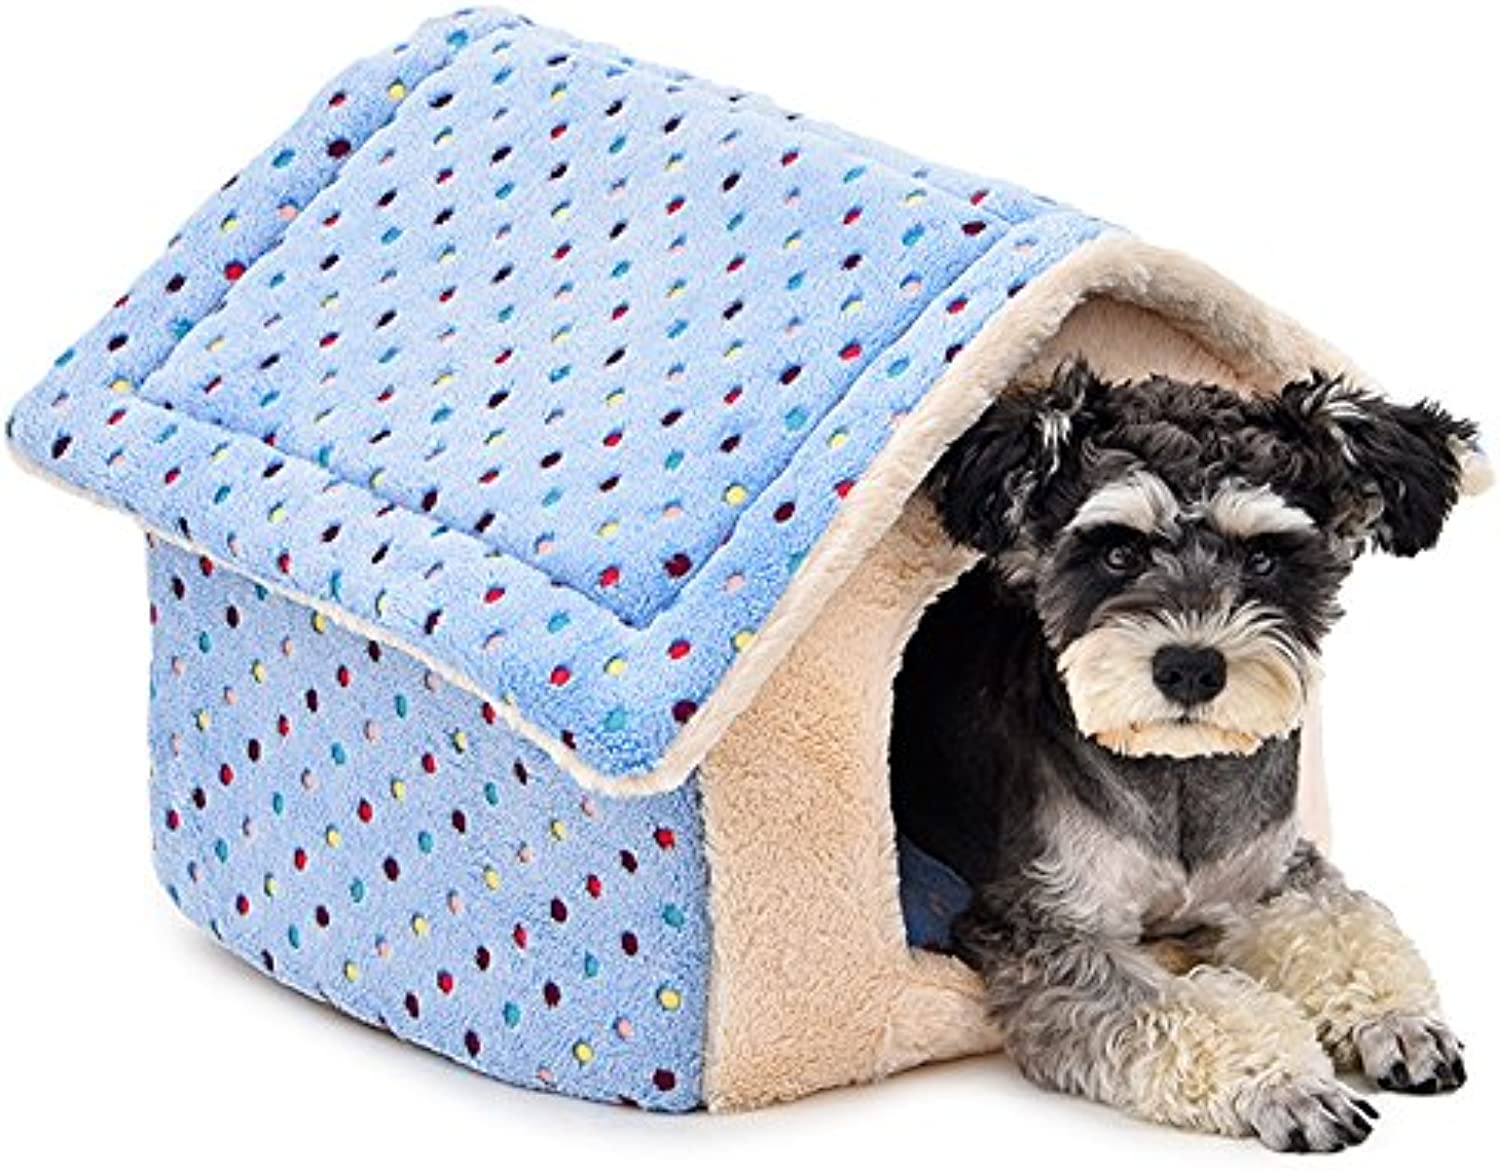 CHONGWUCX Soft cotton comfortable fabric kennel removable and washable seasons cat sleeping bag pad nonslip moistureproof pet nest autumn and winter warm thicker dog bed  47  39cm   bluee